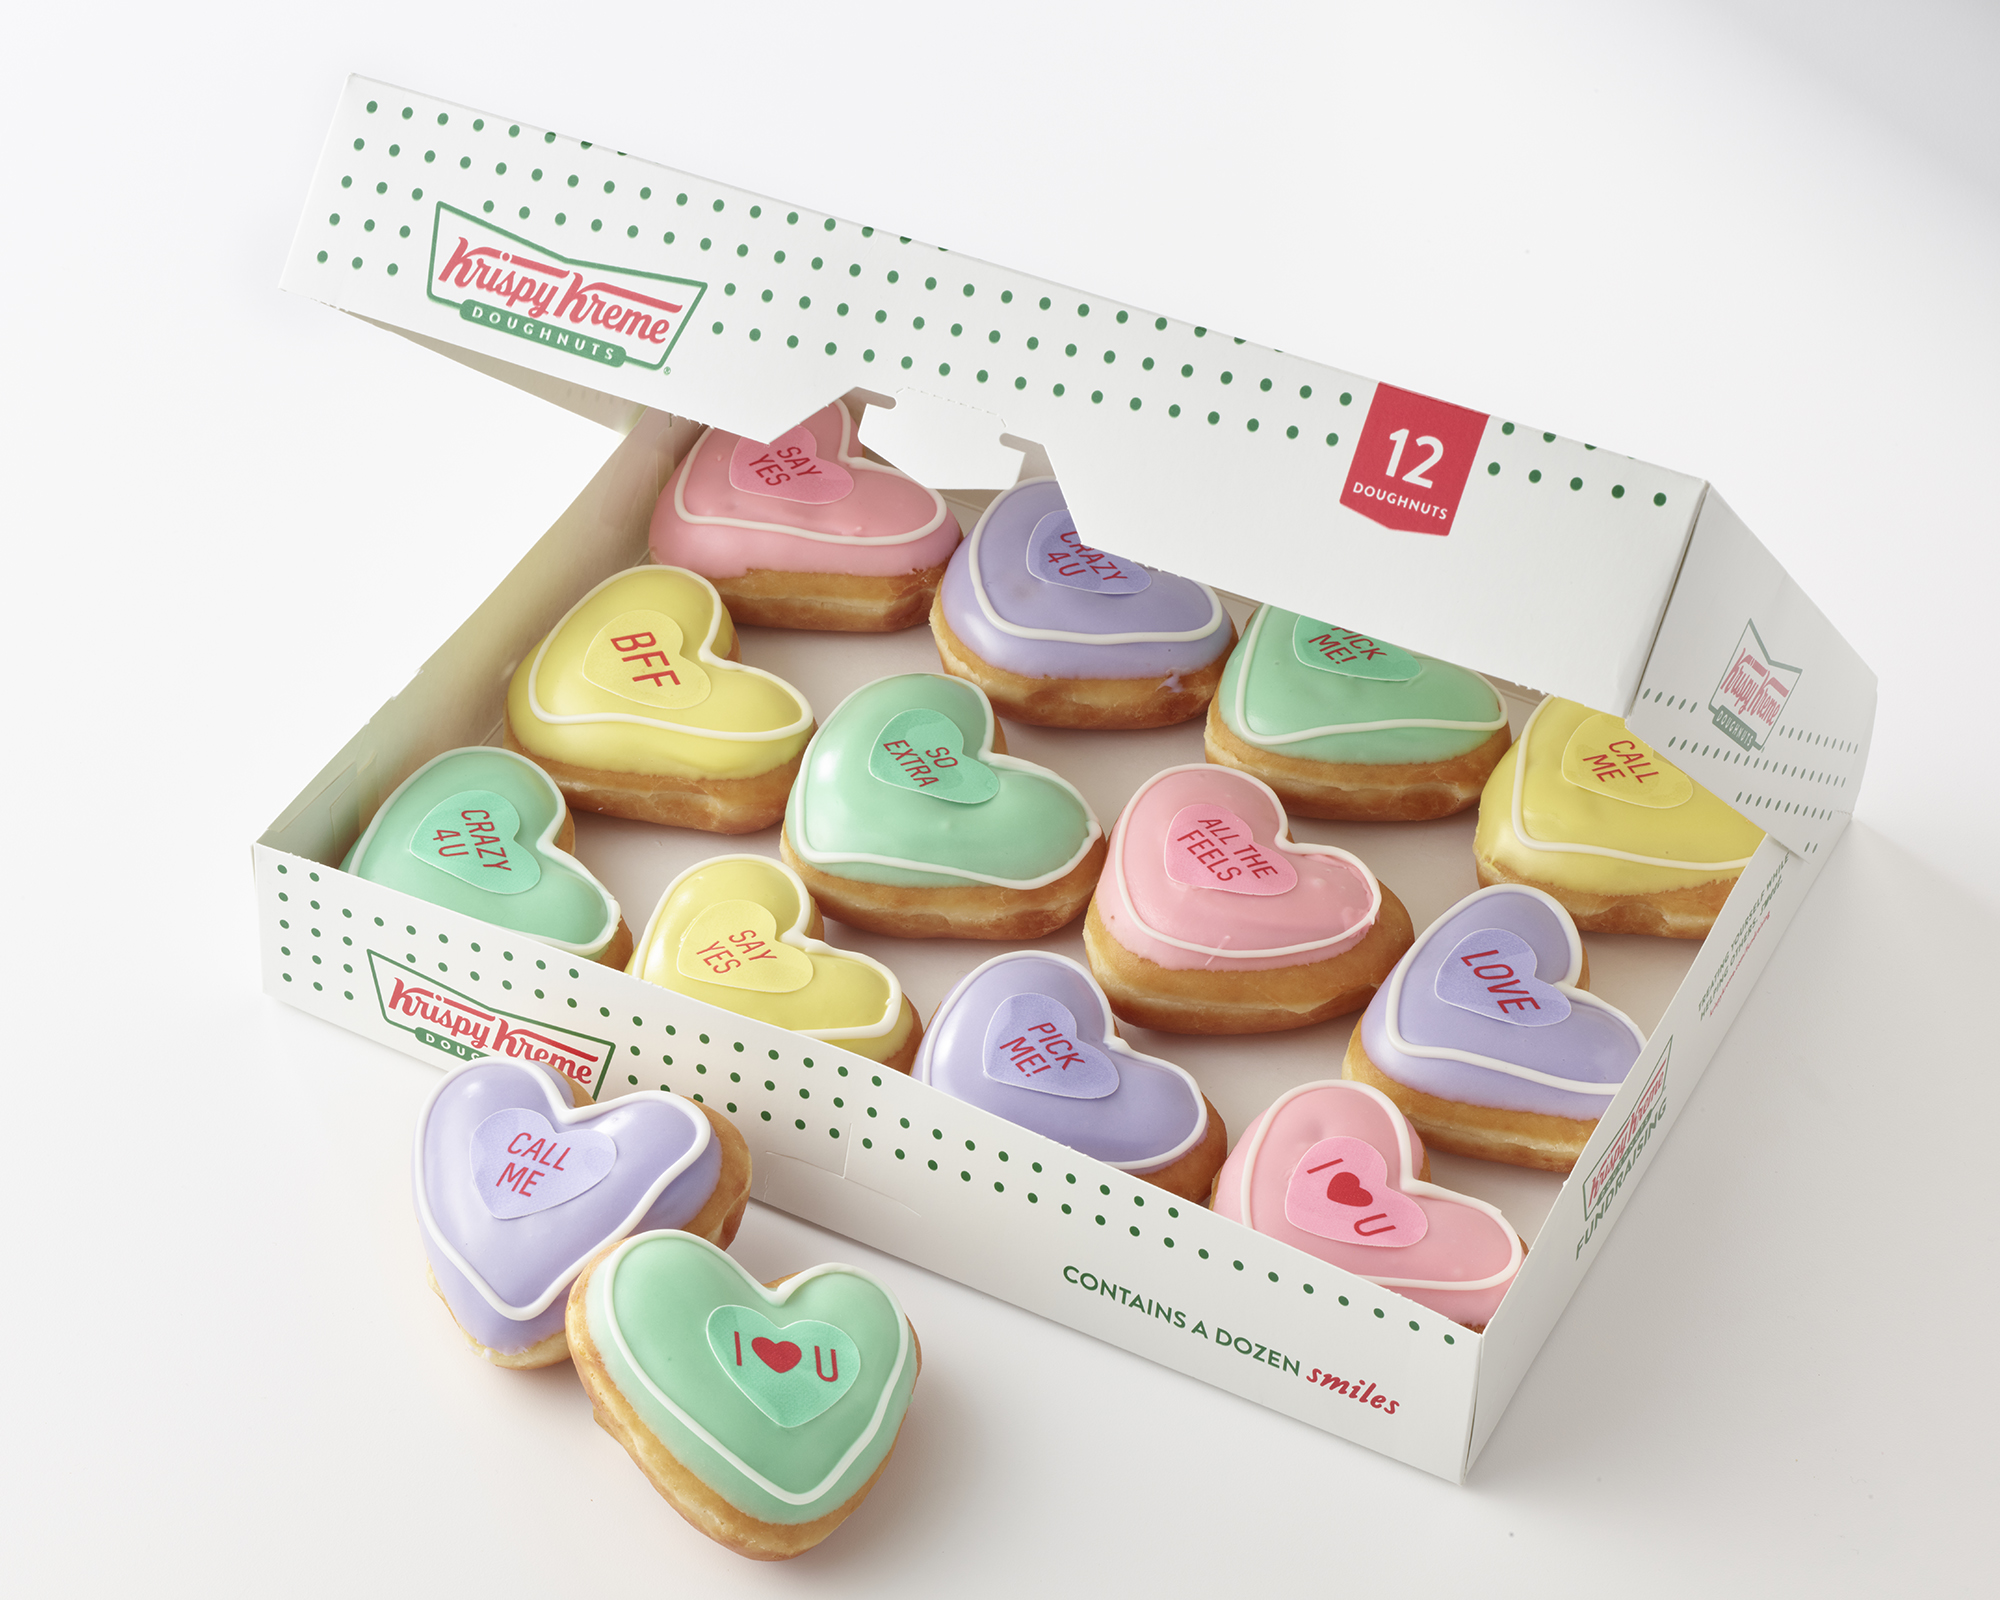 Heart-shaped donuts for Valentine's Day